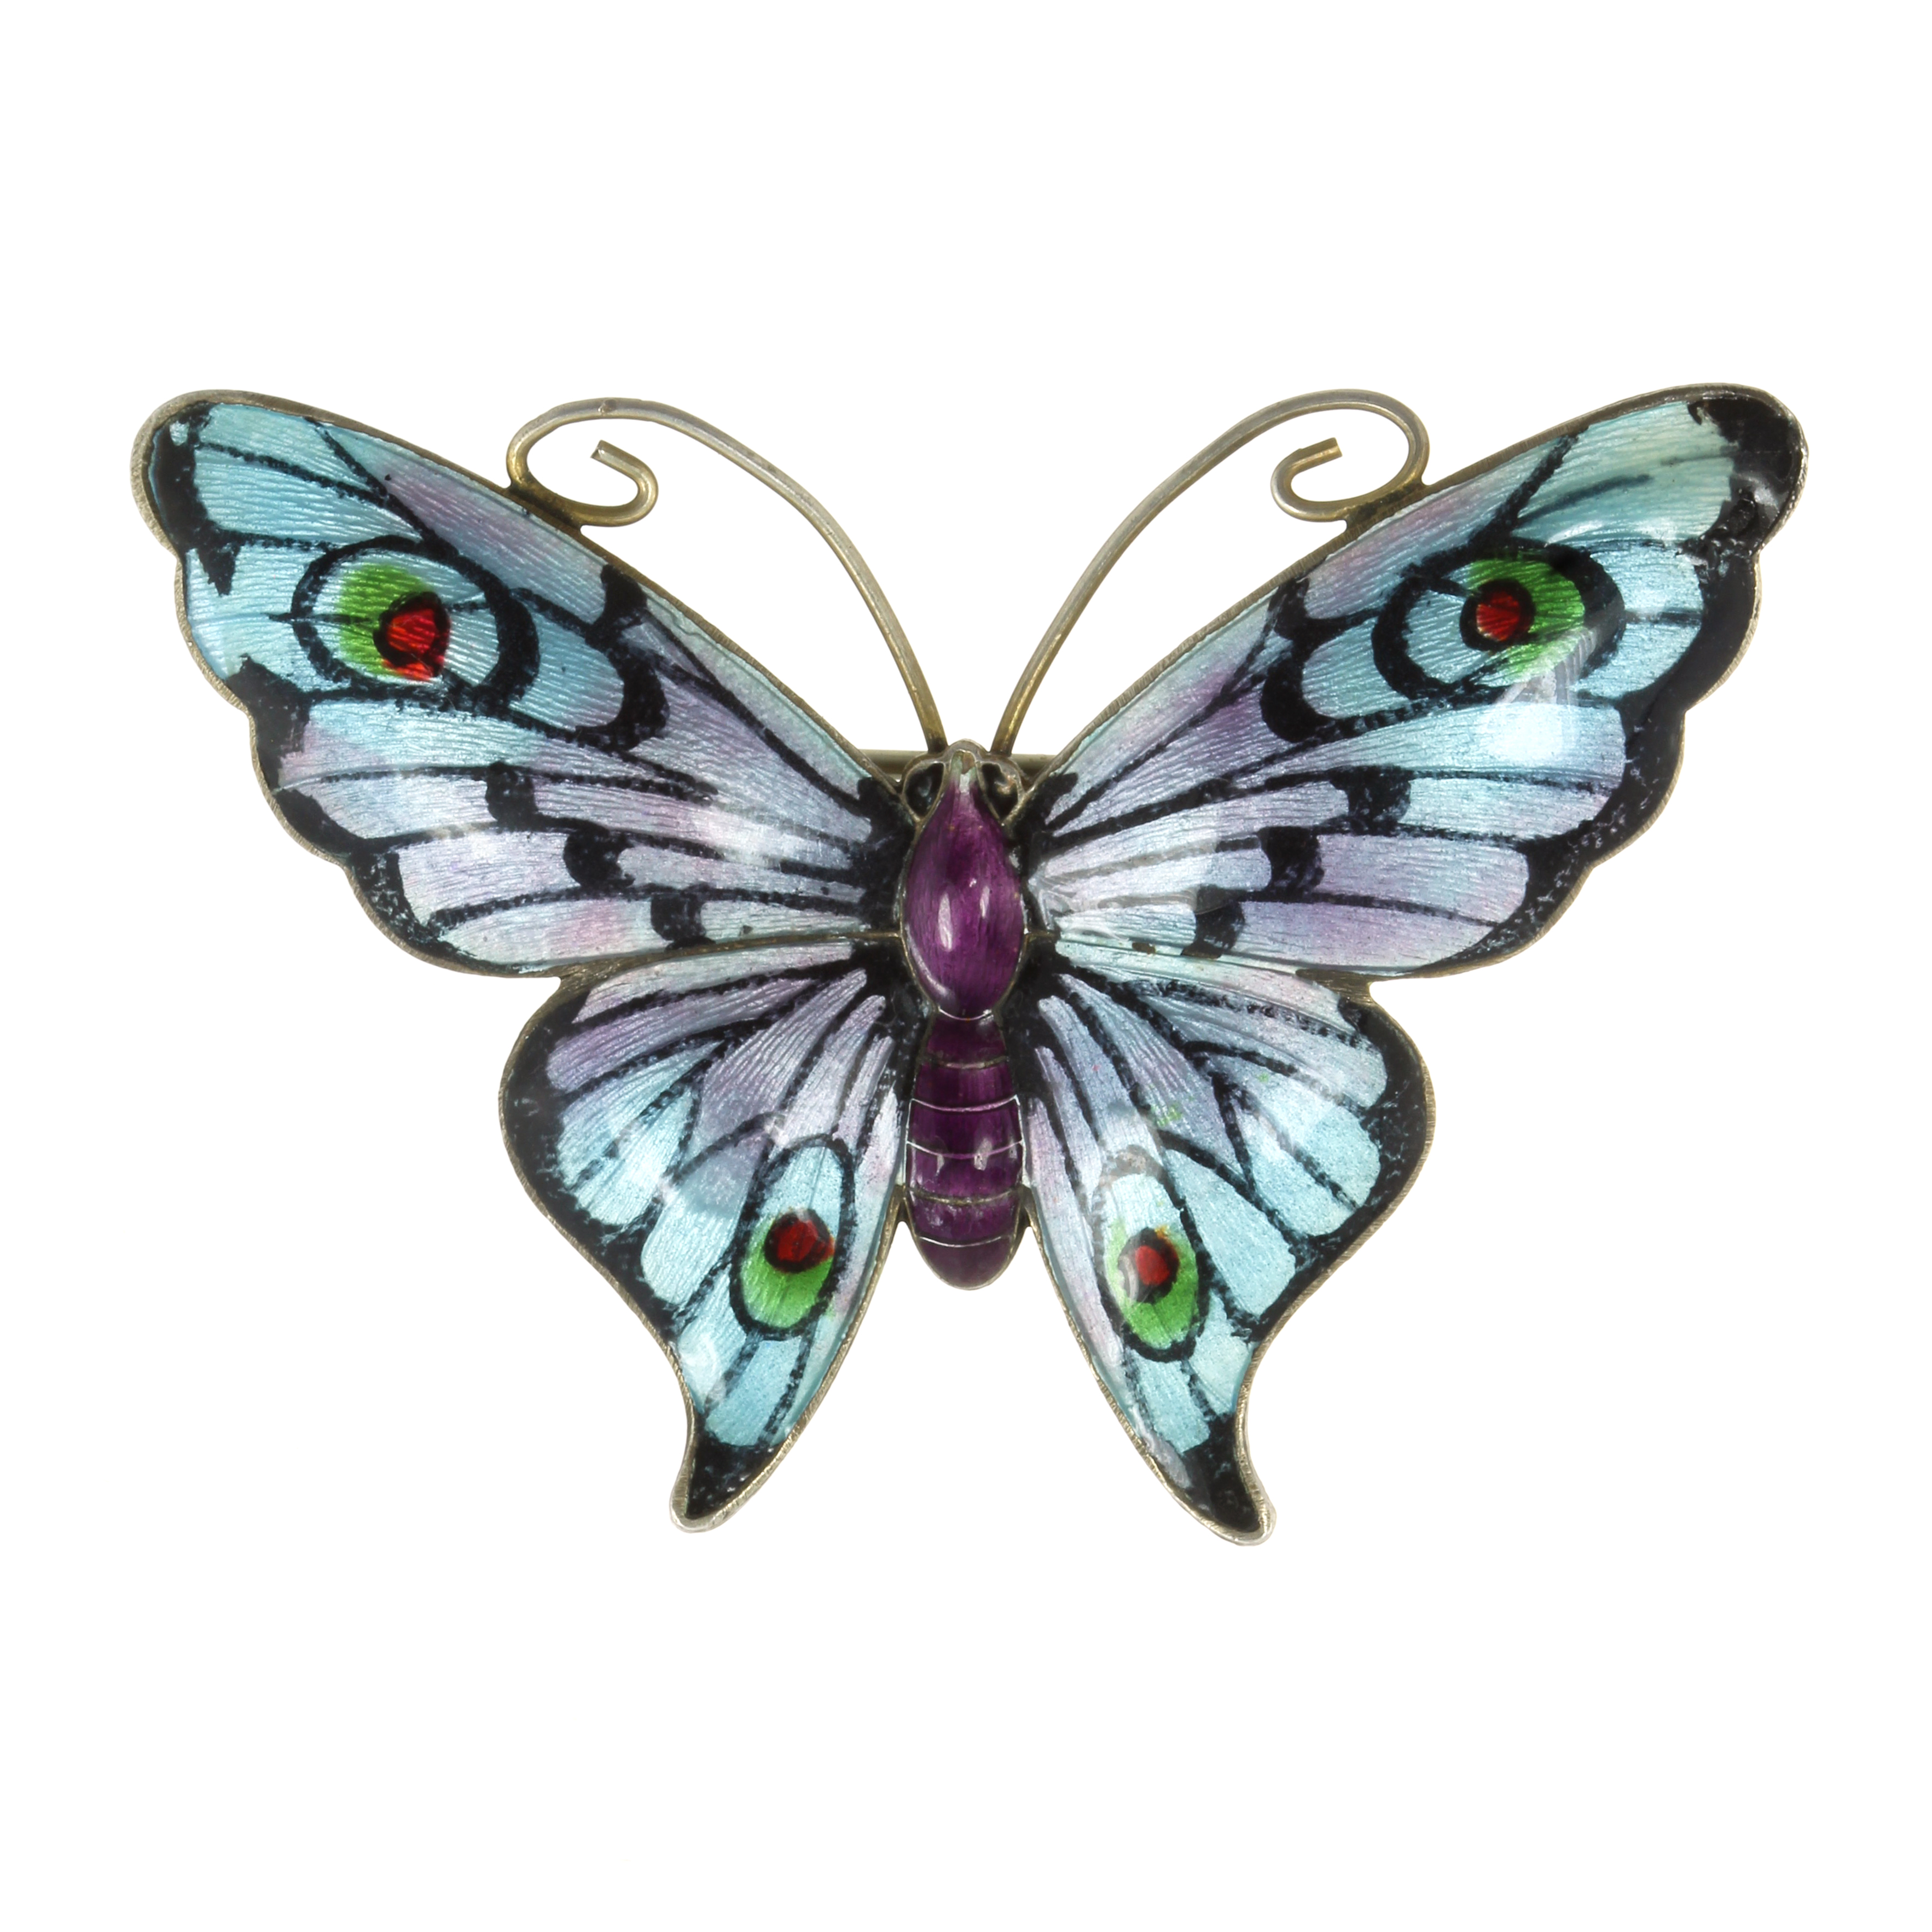 Los 43 - AN ENAMEL BUTTERFLY BROOCH, EARLY 20TH CENTURY designed as a butterfly, its body and wings decorated